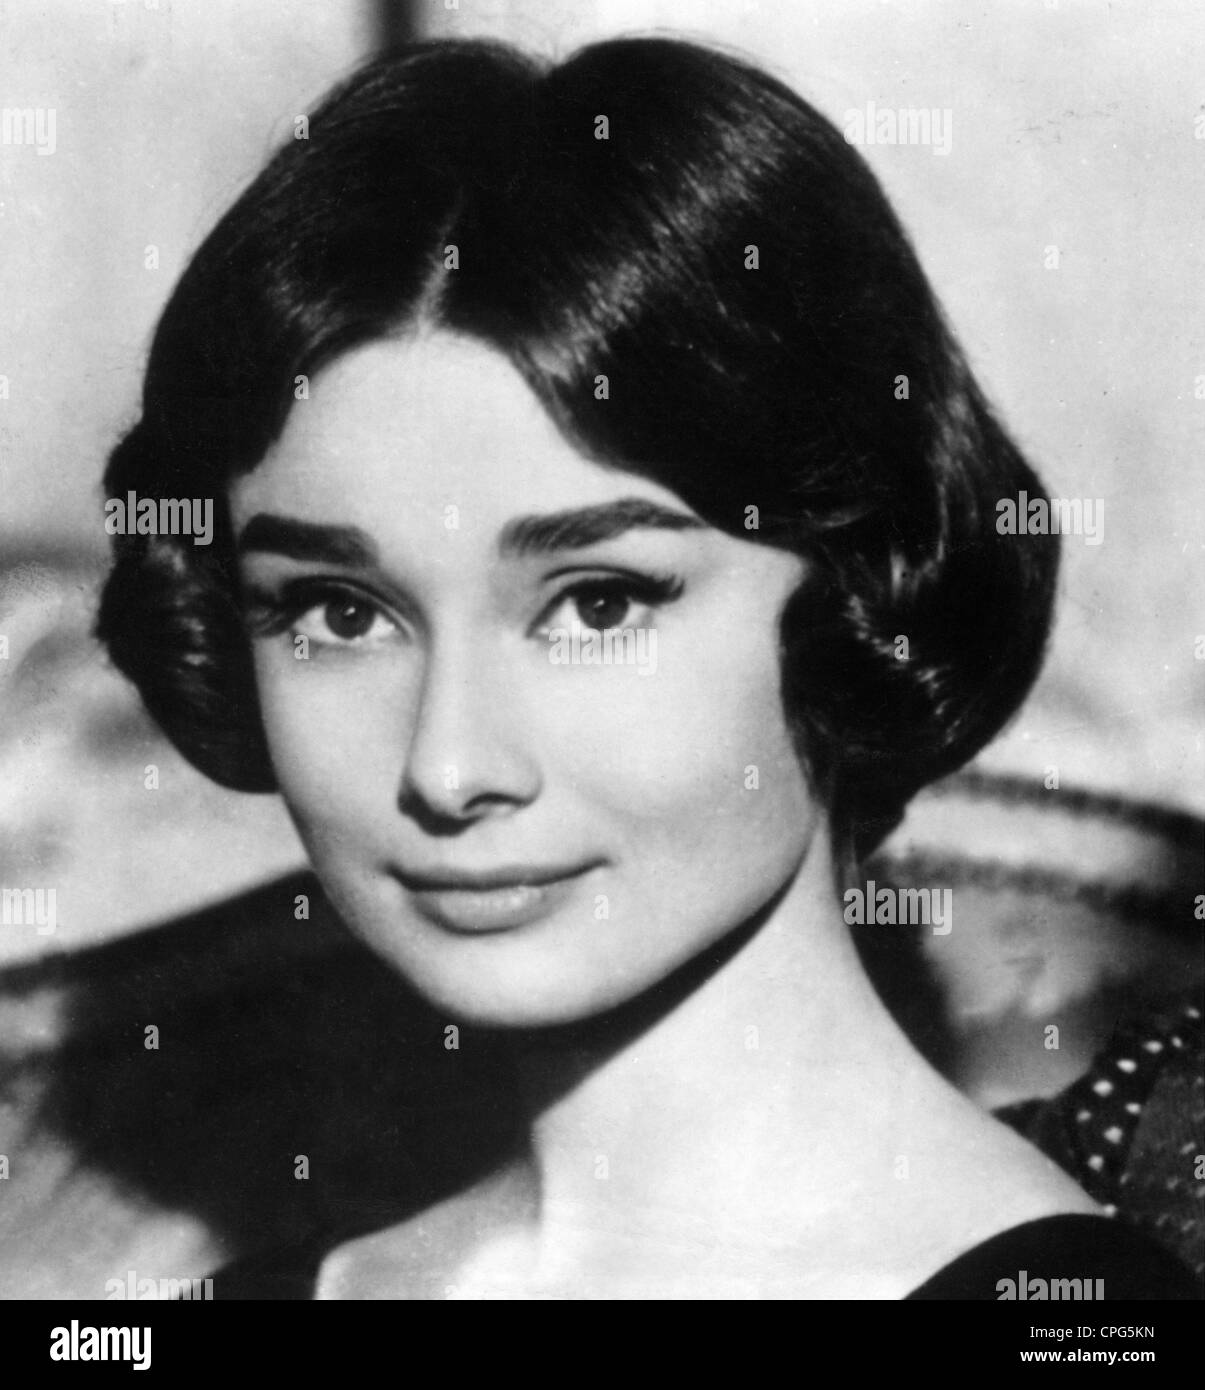 Hepburn, Audrey, 4.5.1929 - 20.1.1993, British actress, portrait, circa 1950s, Additional-Rights-Clearances-NA - Stock Image